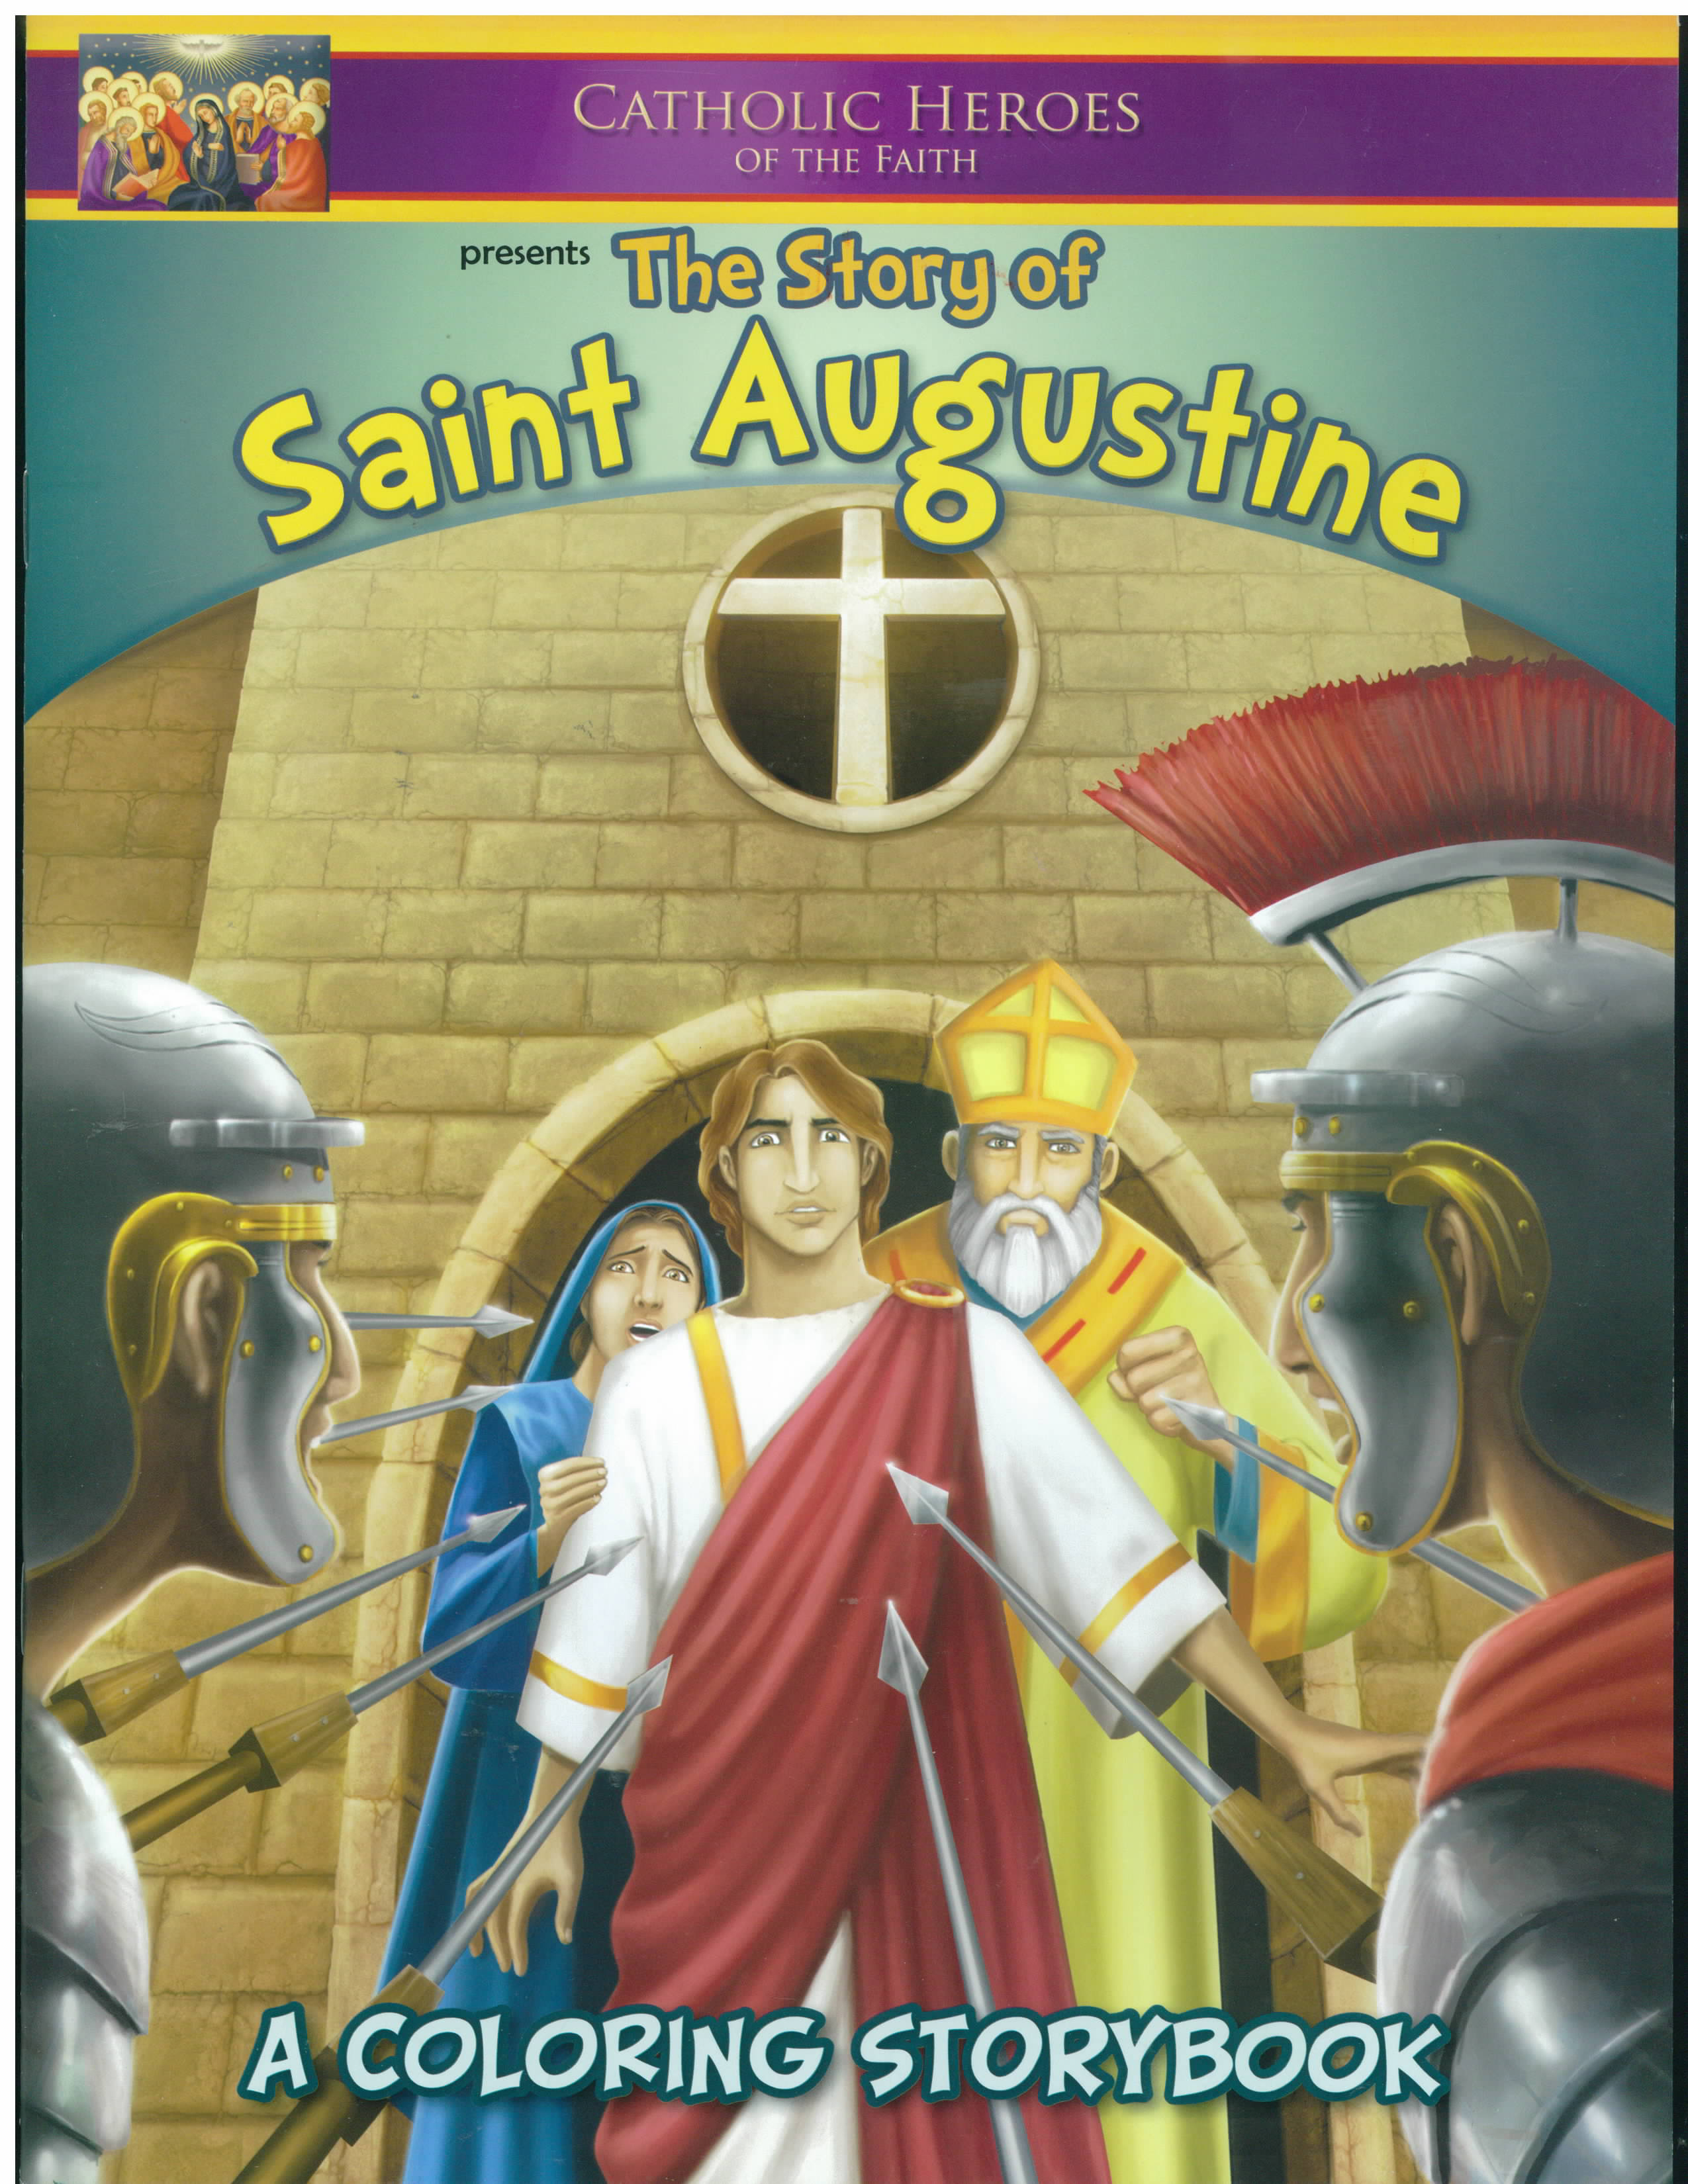 Saint Augustine Coloring Storybook-CSB-AUG